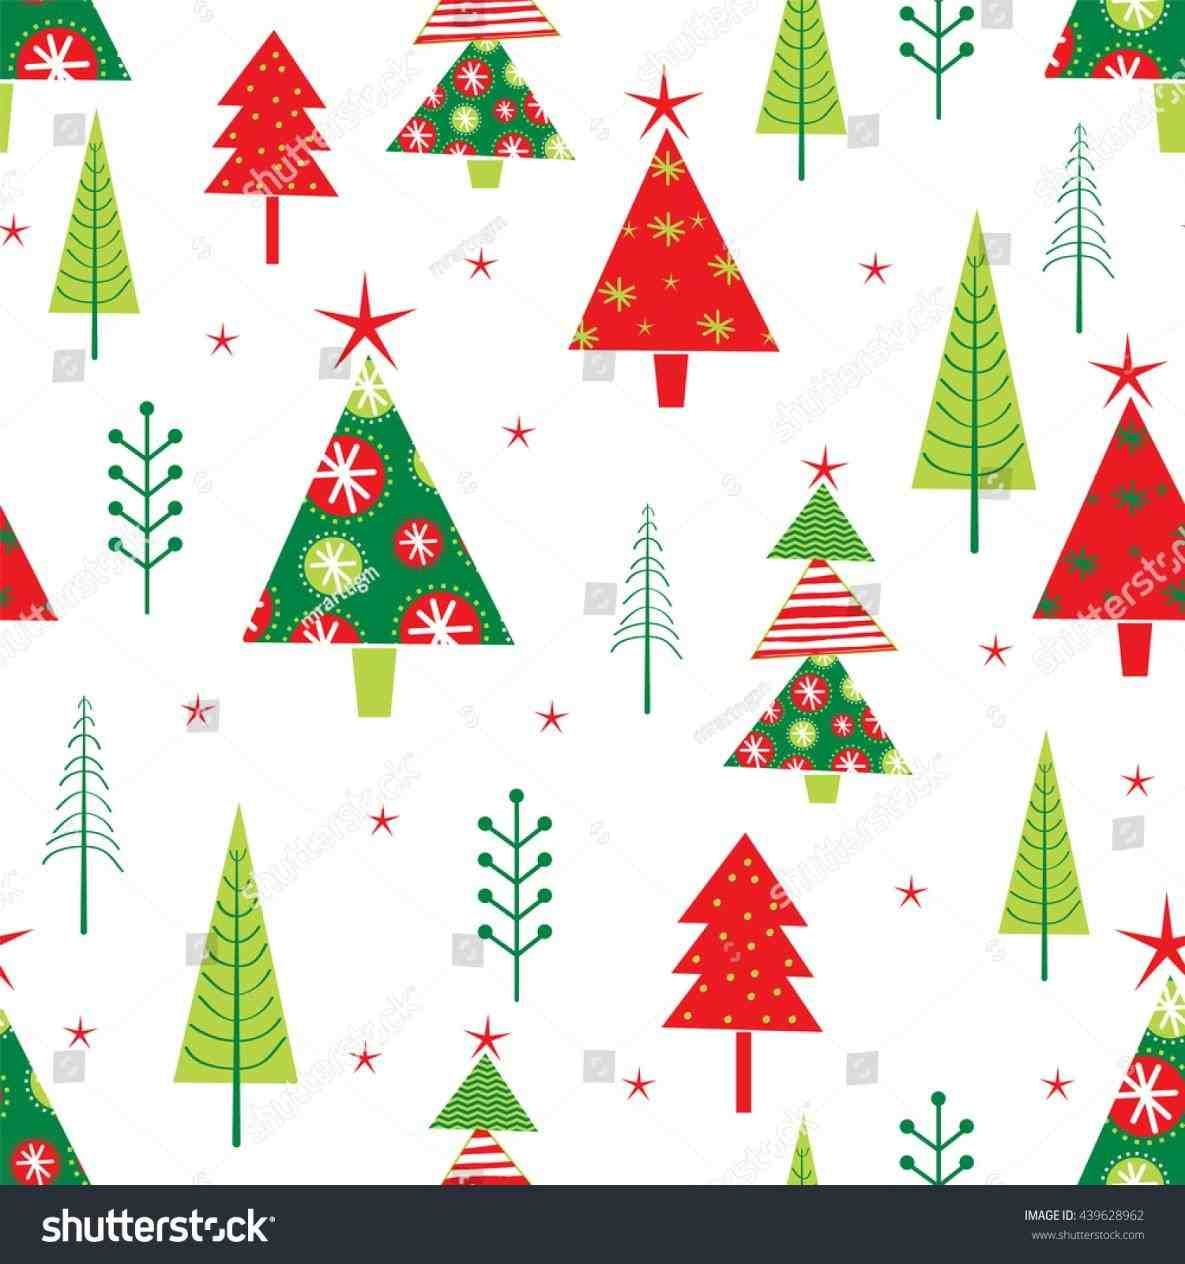 christmas background clipart.